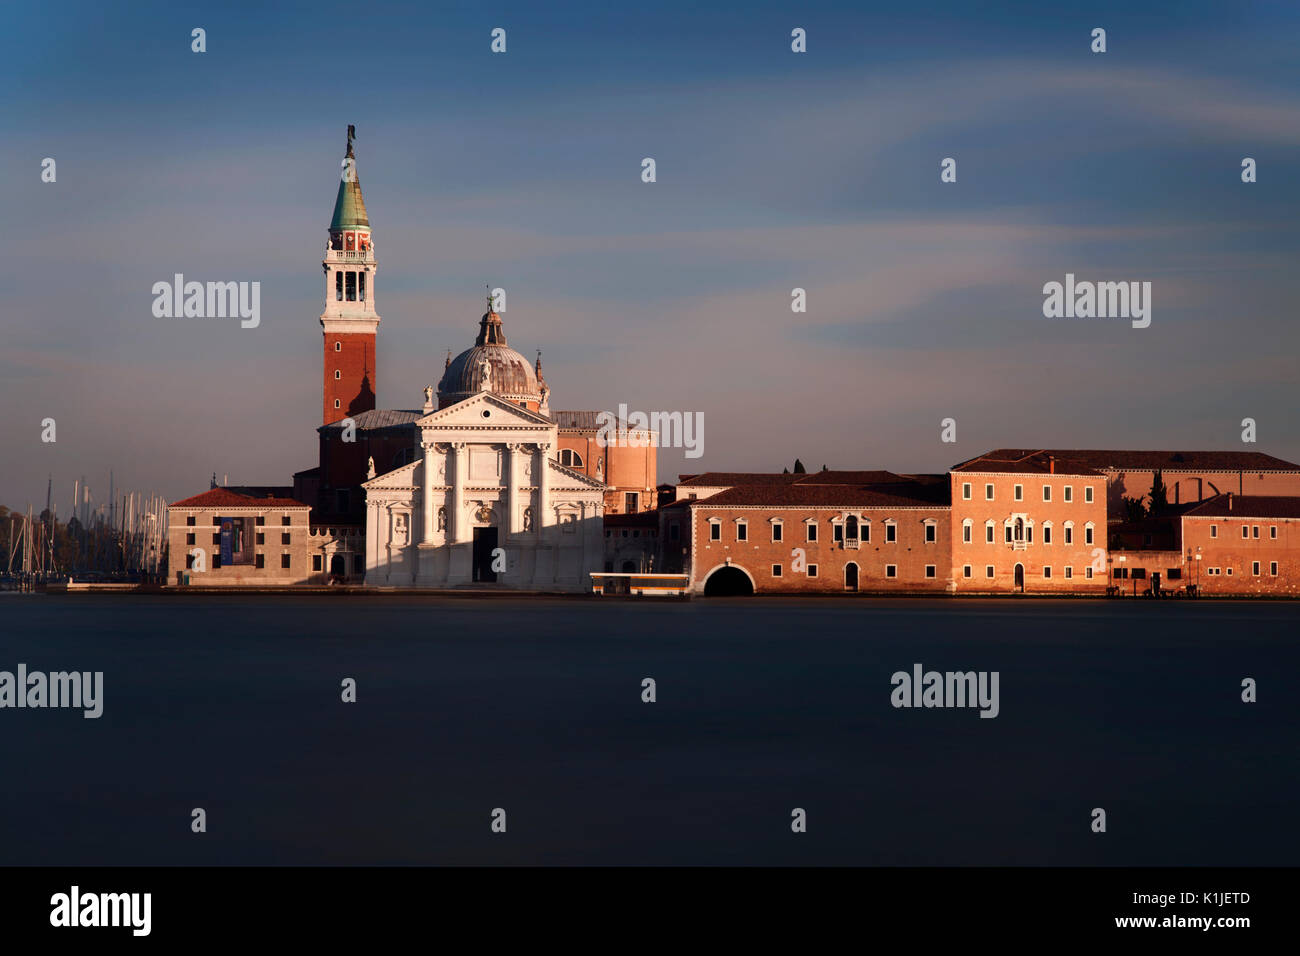 Long exposure of the island of San Giorgio Maggiore situated just off the historic city of Venice, Italy. - Stock Image